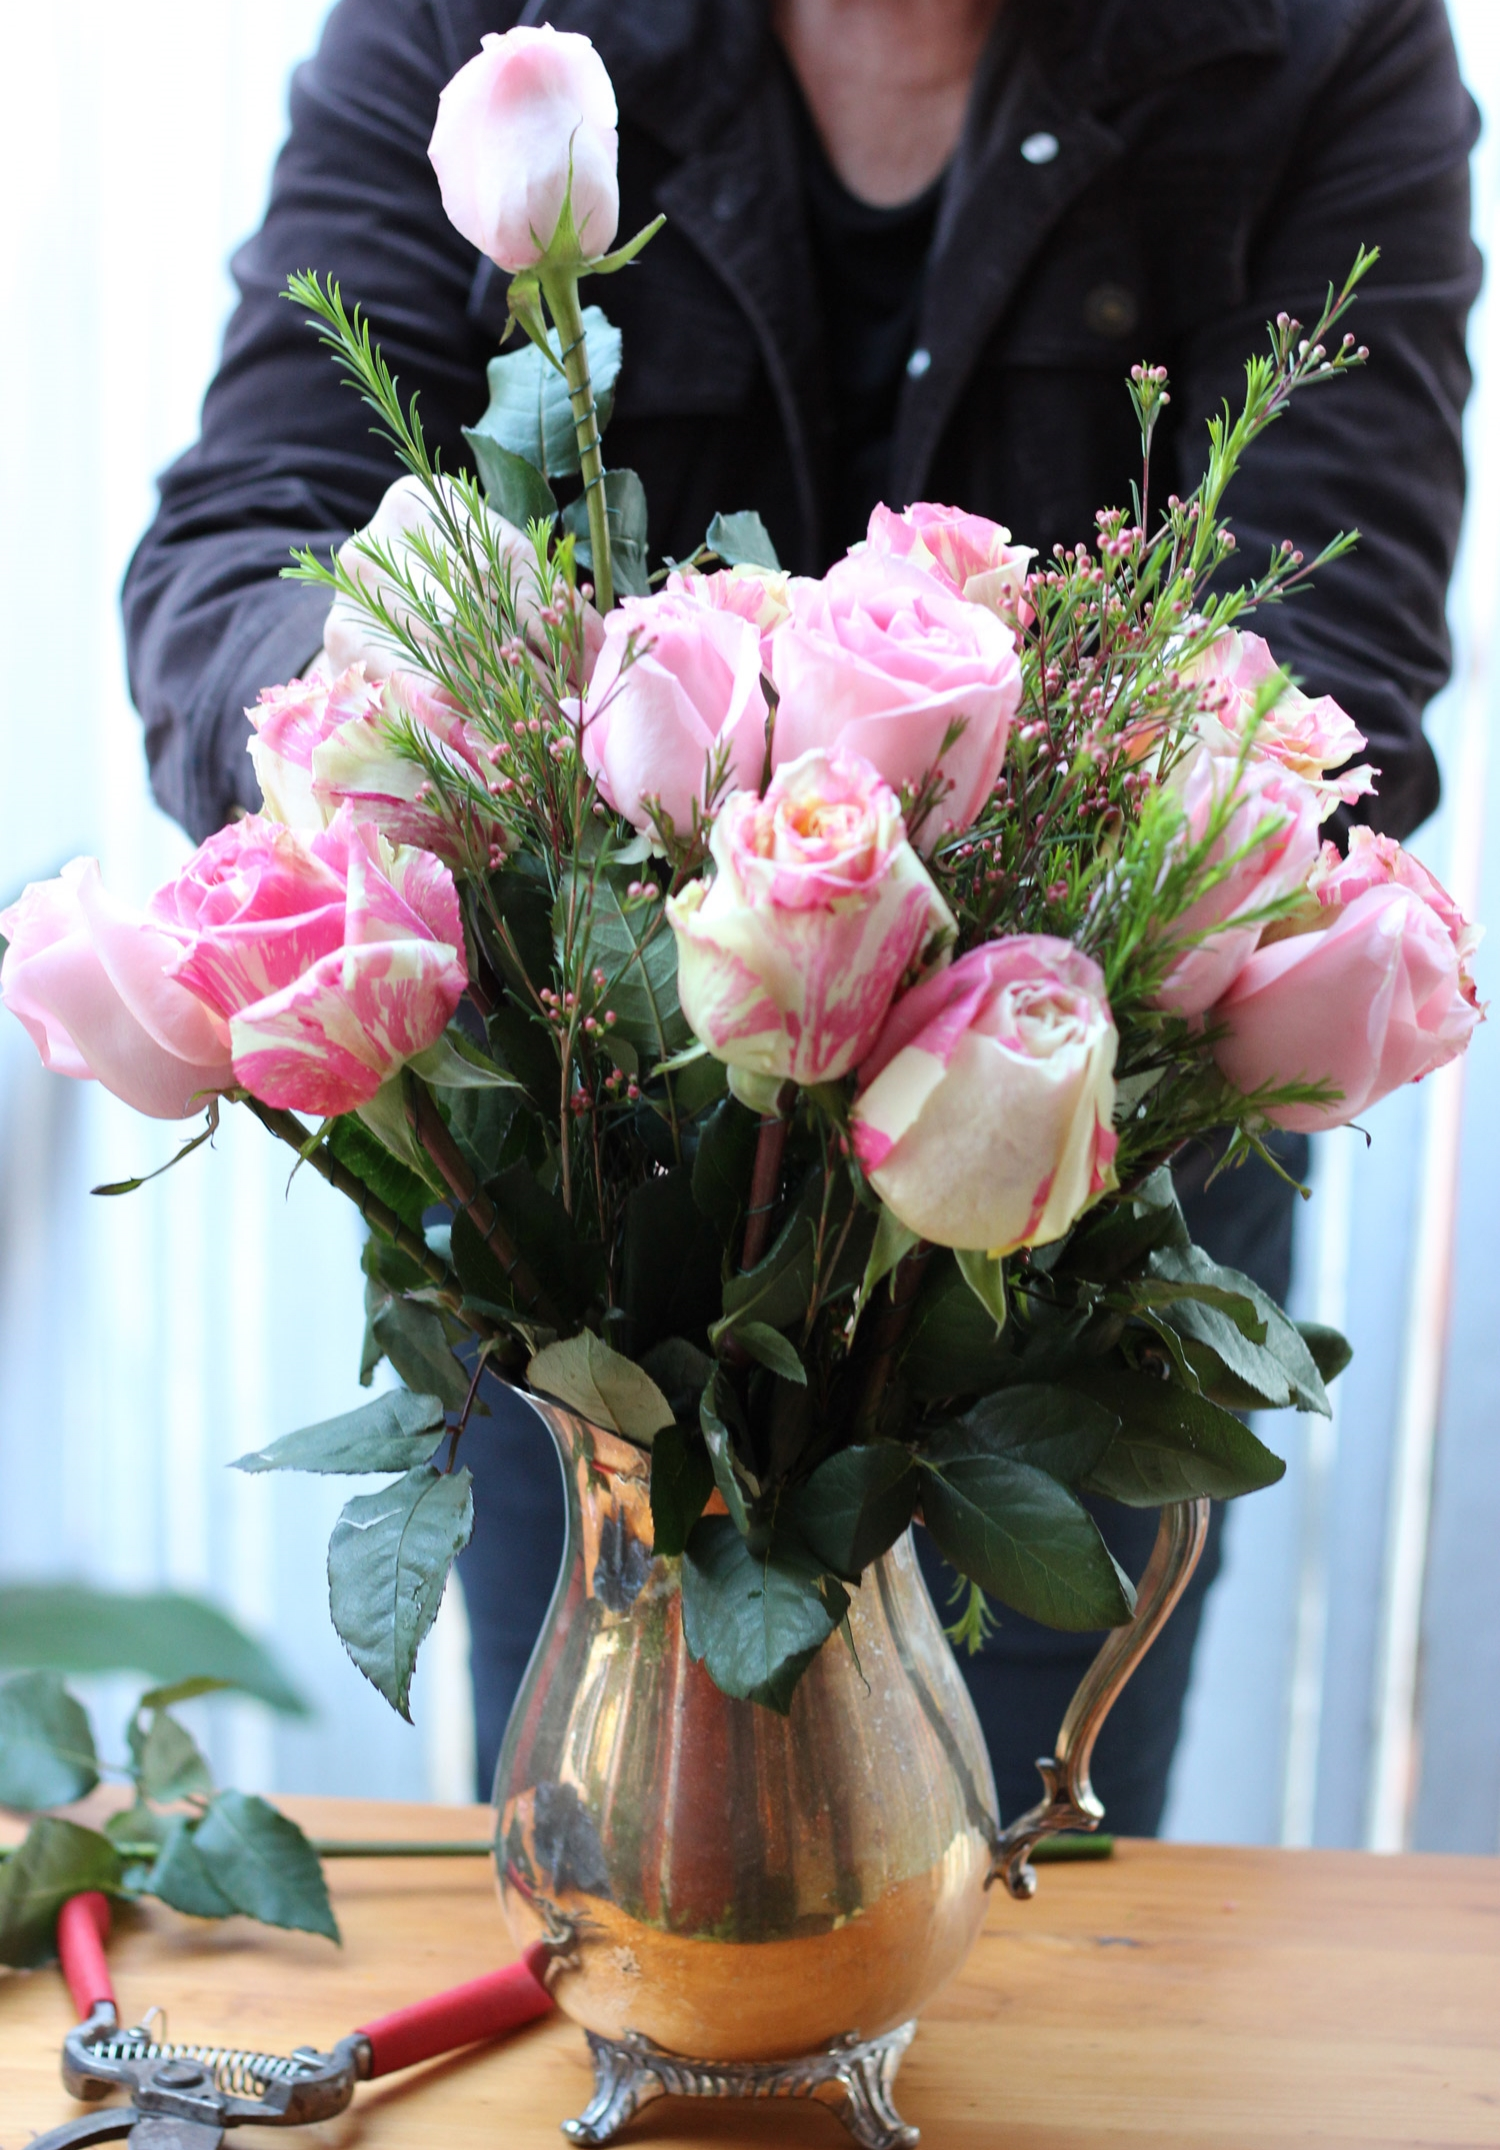 Next,add the all pink roses to create a full bouquet.